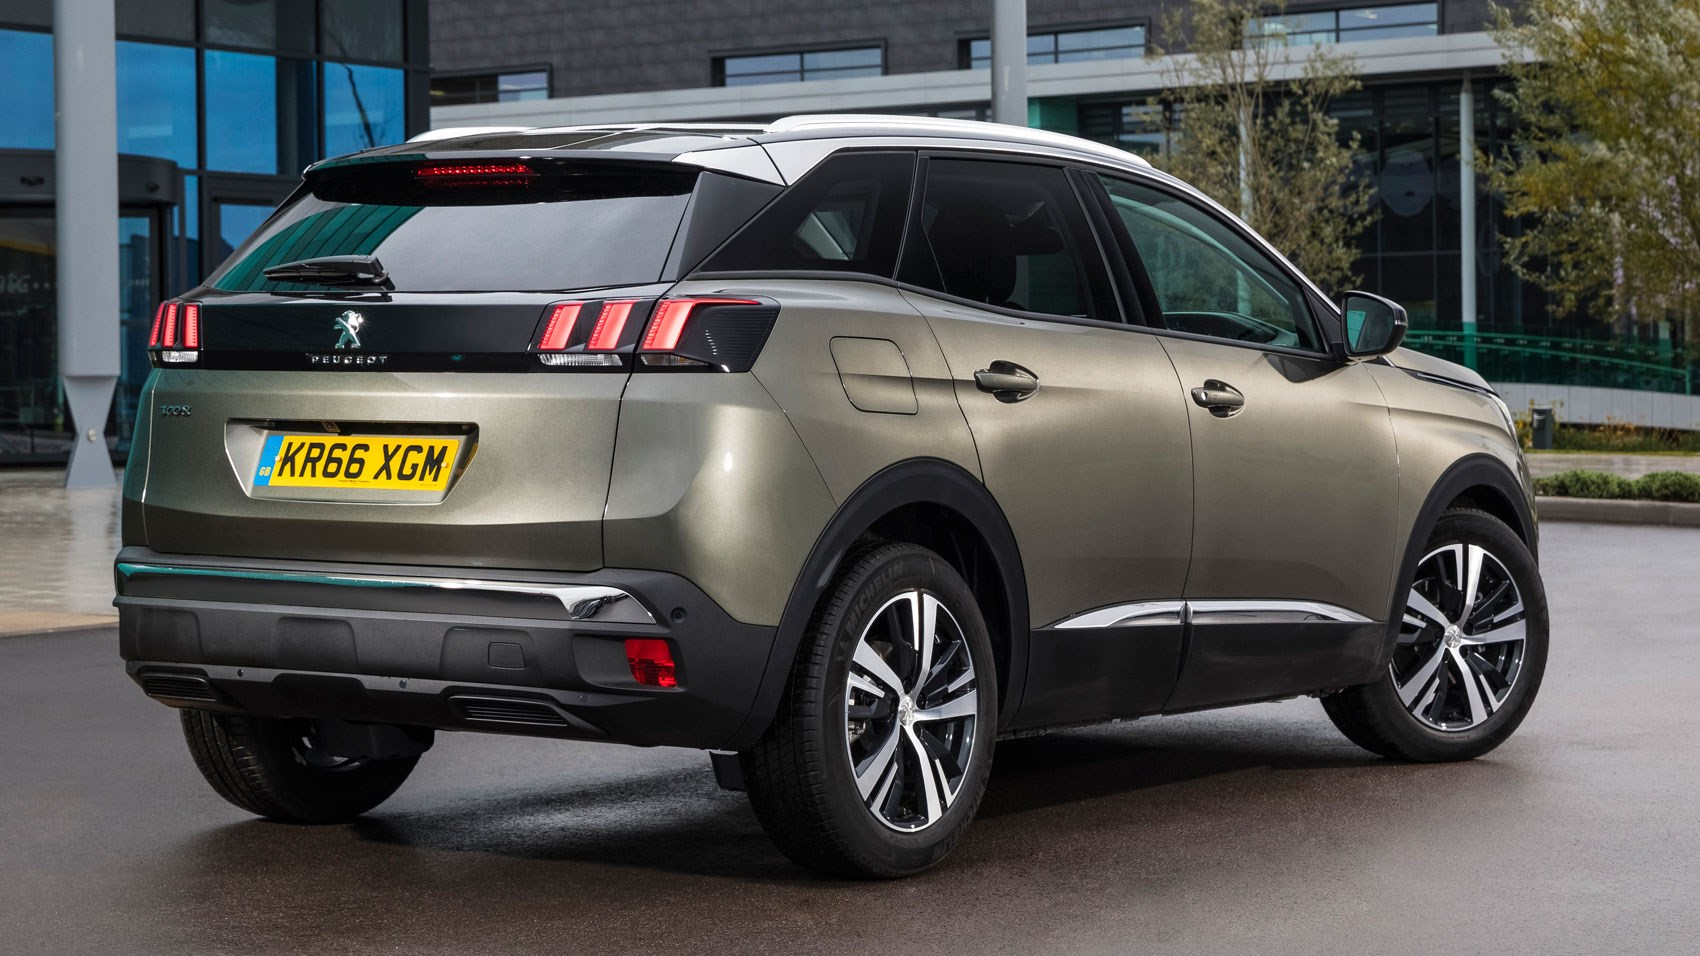 peugeot 3008 1.6 thp 165 eat6 allure (2017) reviewcar magazine